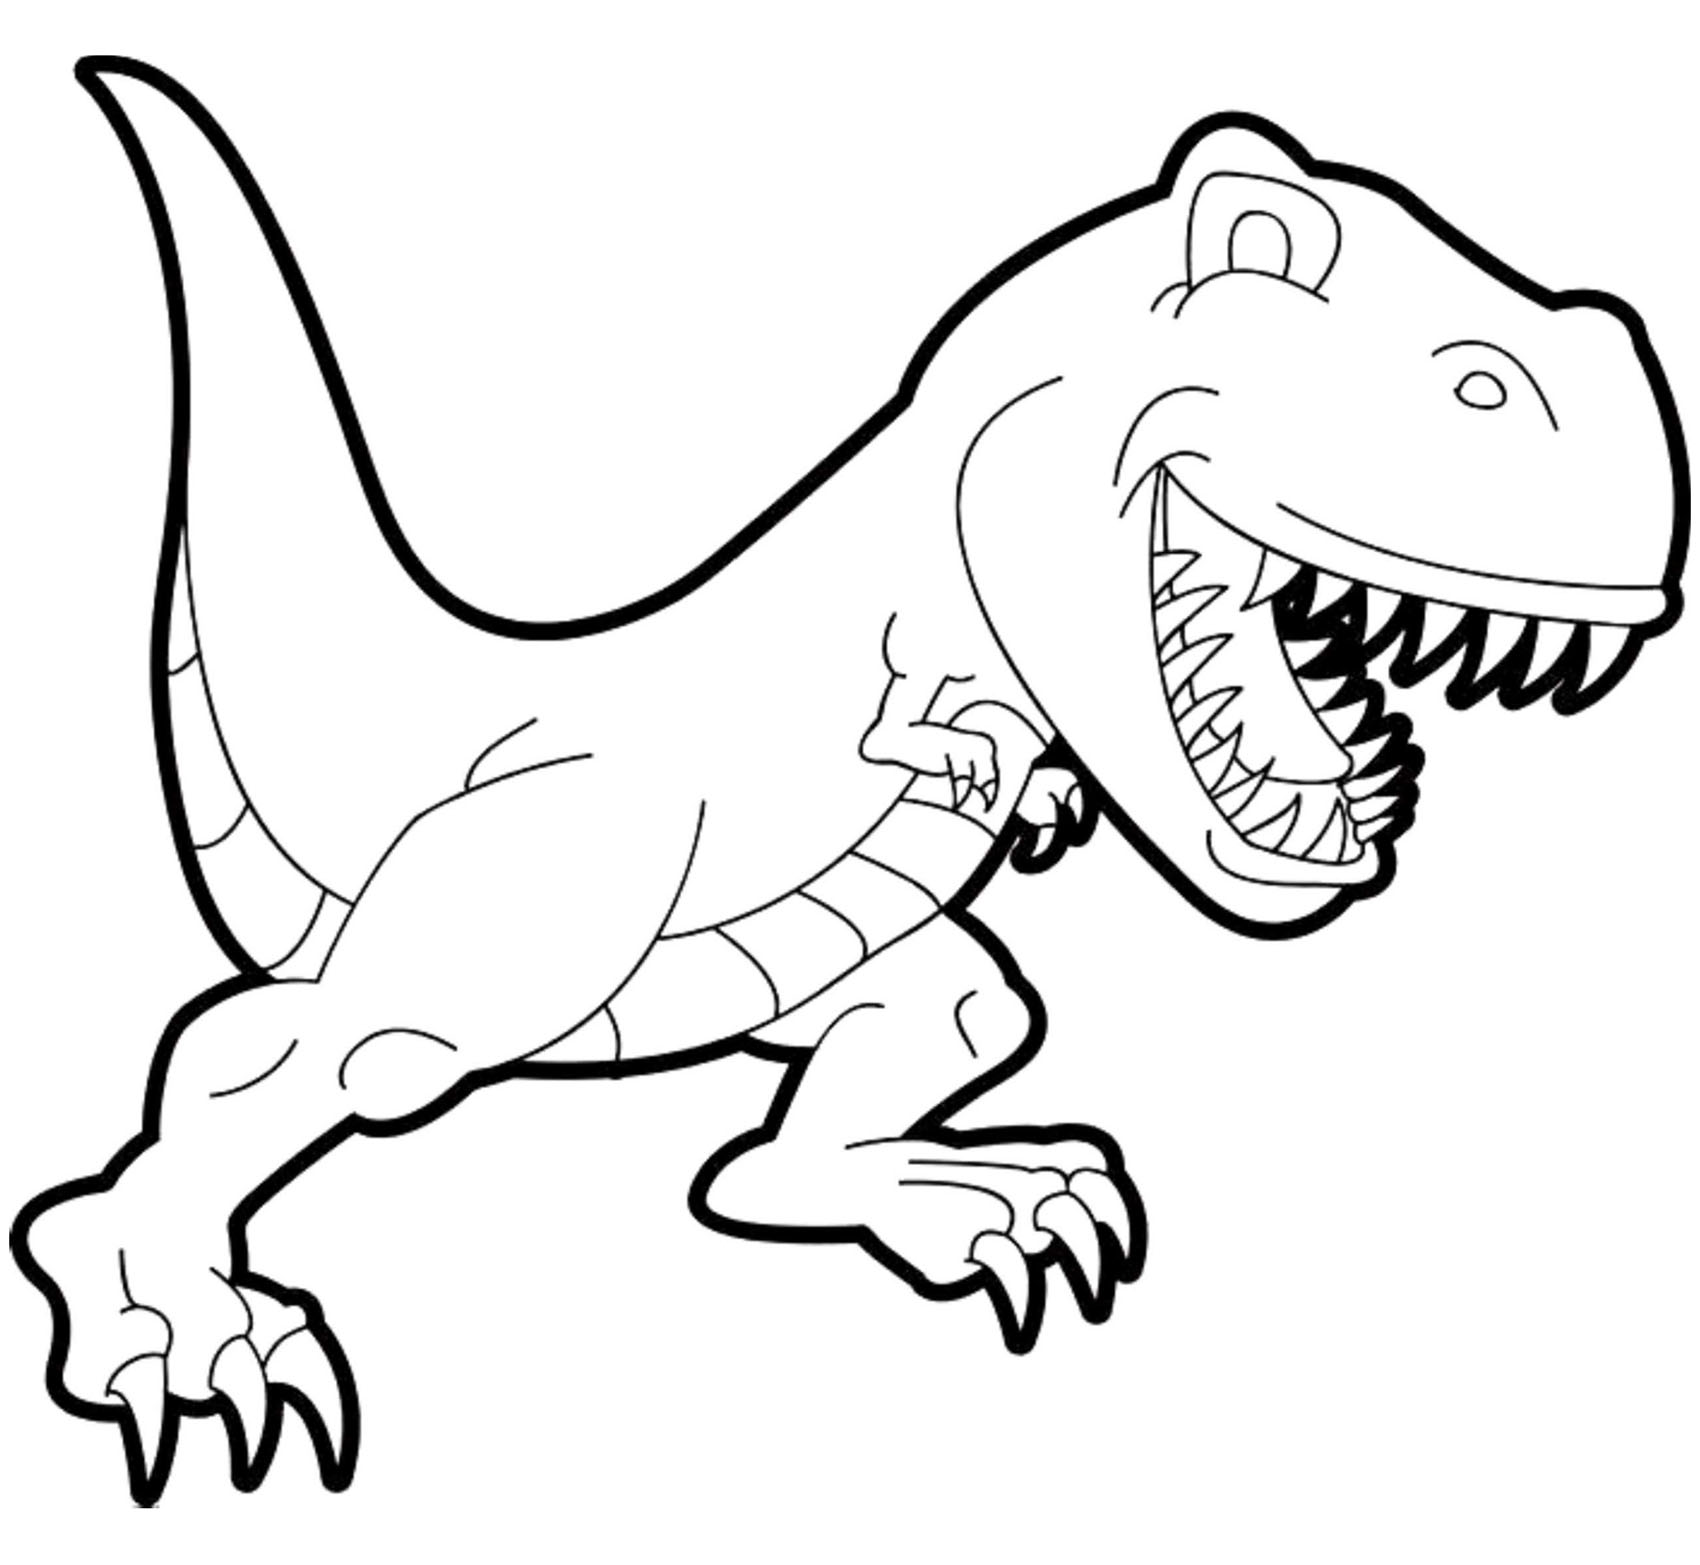 coloring dinosaur free printables dinosaur colouring pages in the playroom coloring free dinosaur printables